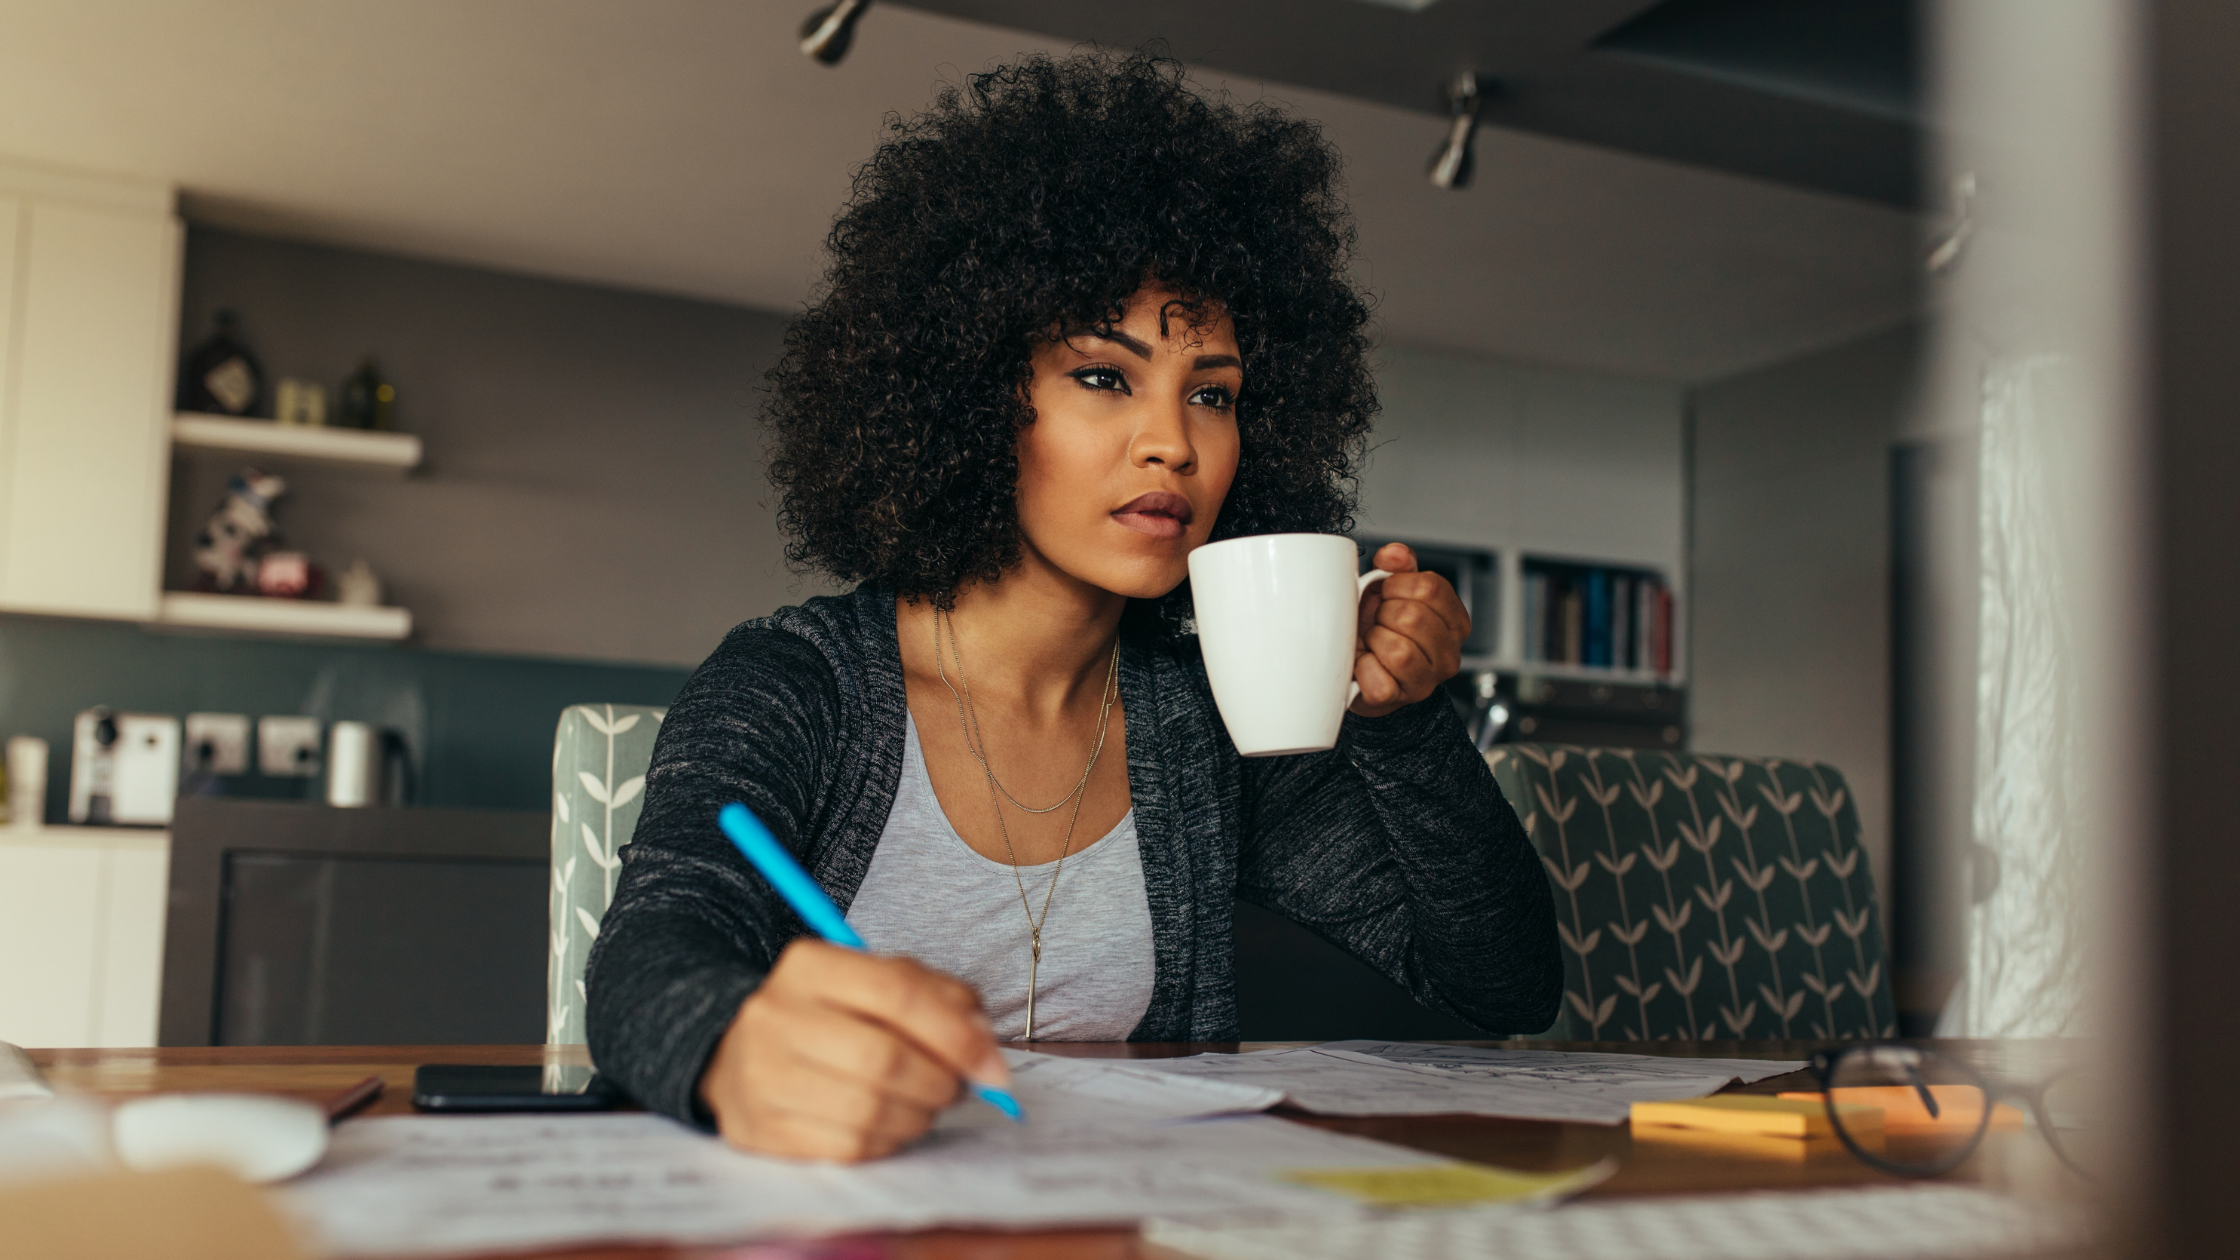 woman drinking from a mug in home office